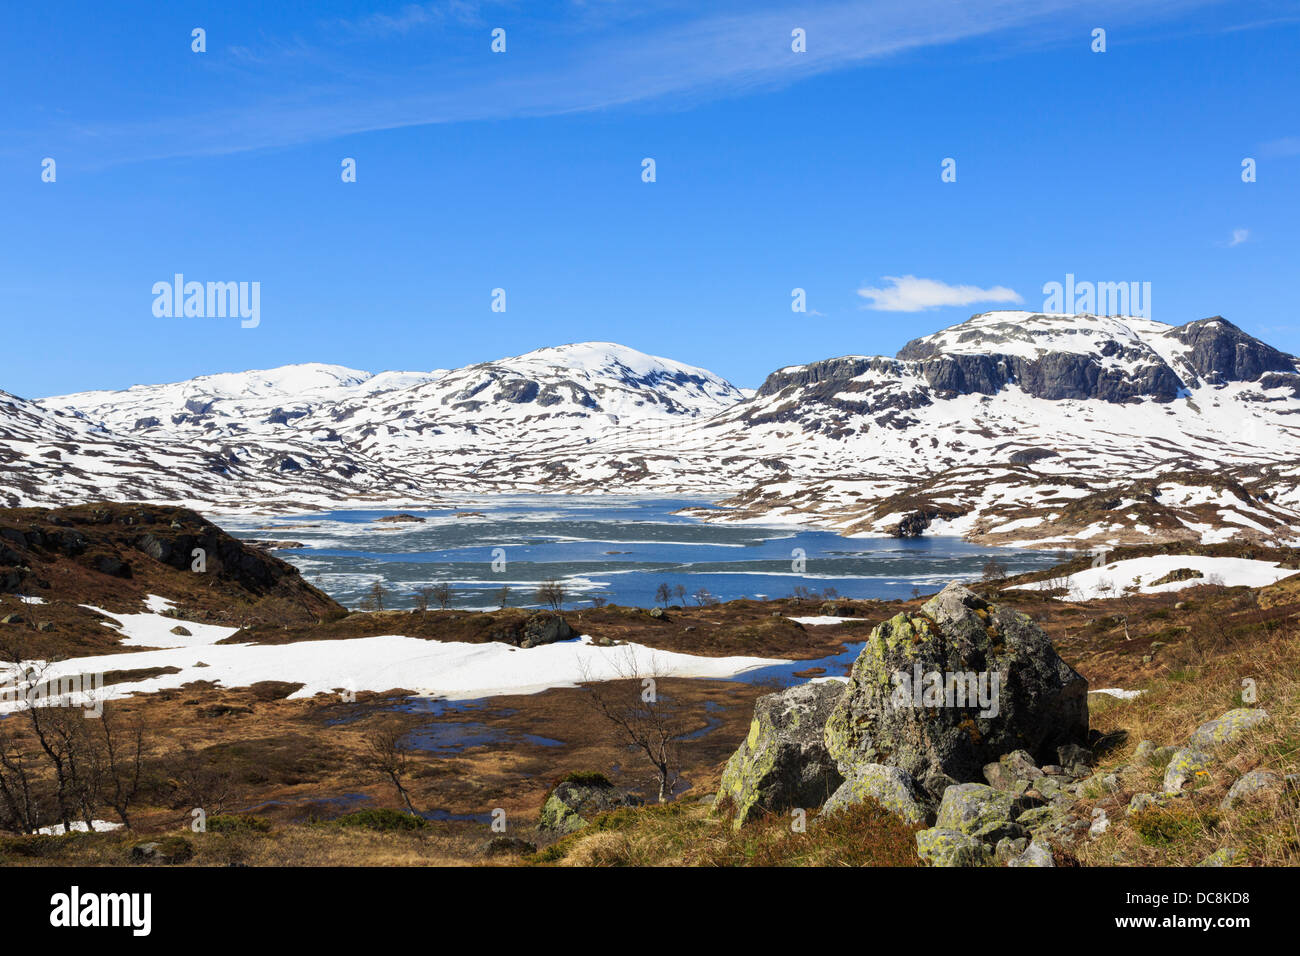 Lake Kjelavatn with ice and snow on high moorland plateau in early summer. Hardanger, Telemark, Norway, Scandinavia - Stock Image